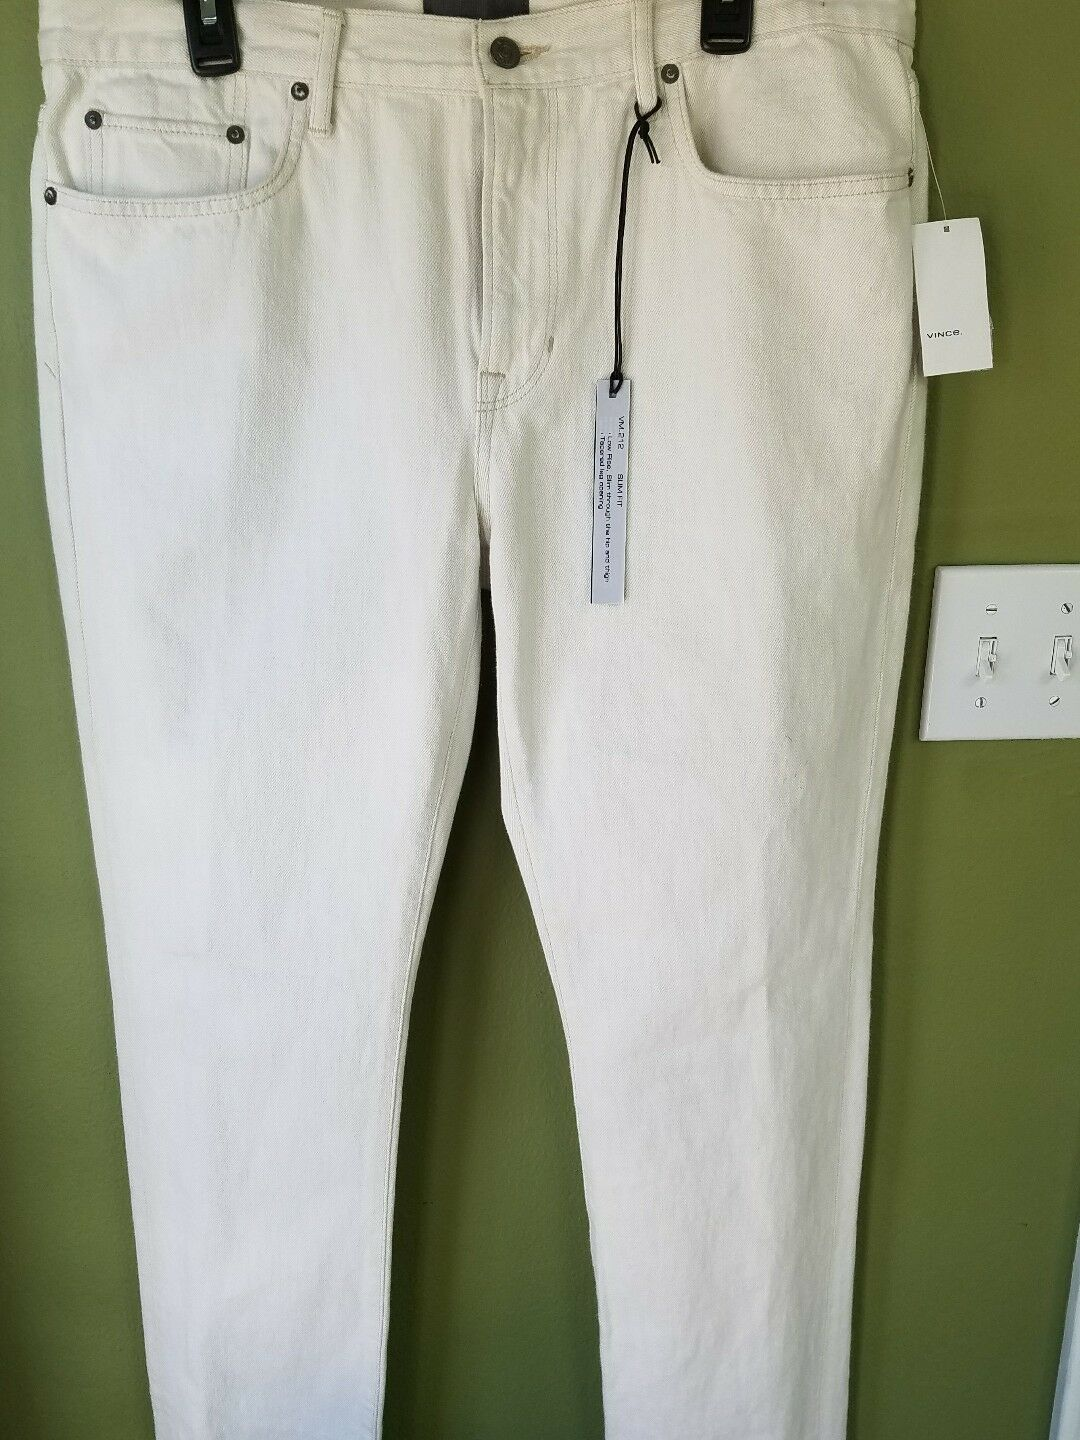 VINCE 'VM 212' Slim Fit Jean Men's Size 36 x 33  NEW  MSRP